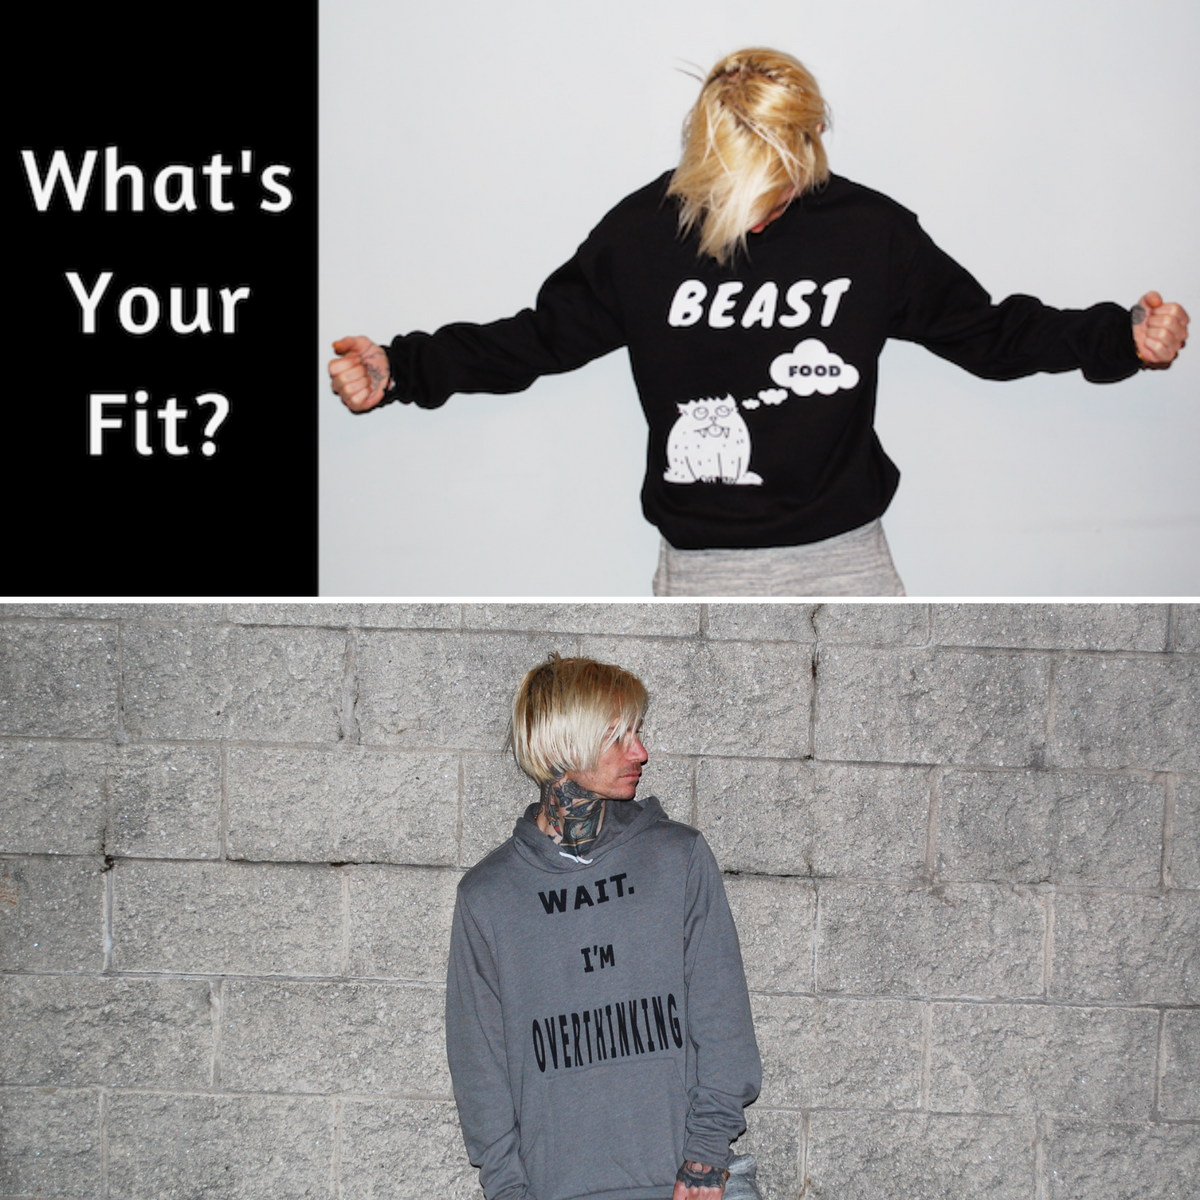 What's Your Fit?  Wait. I'm Overthinking hoodies and t-shirts made just for you!